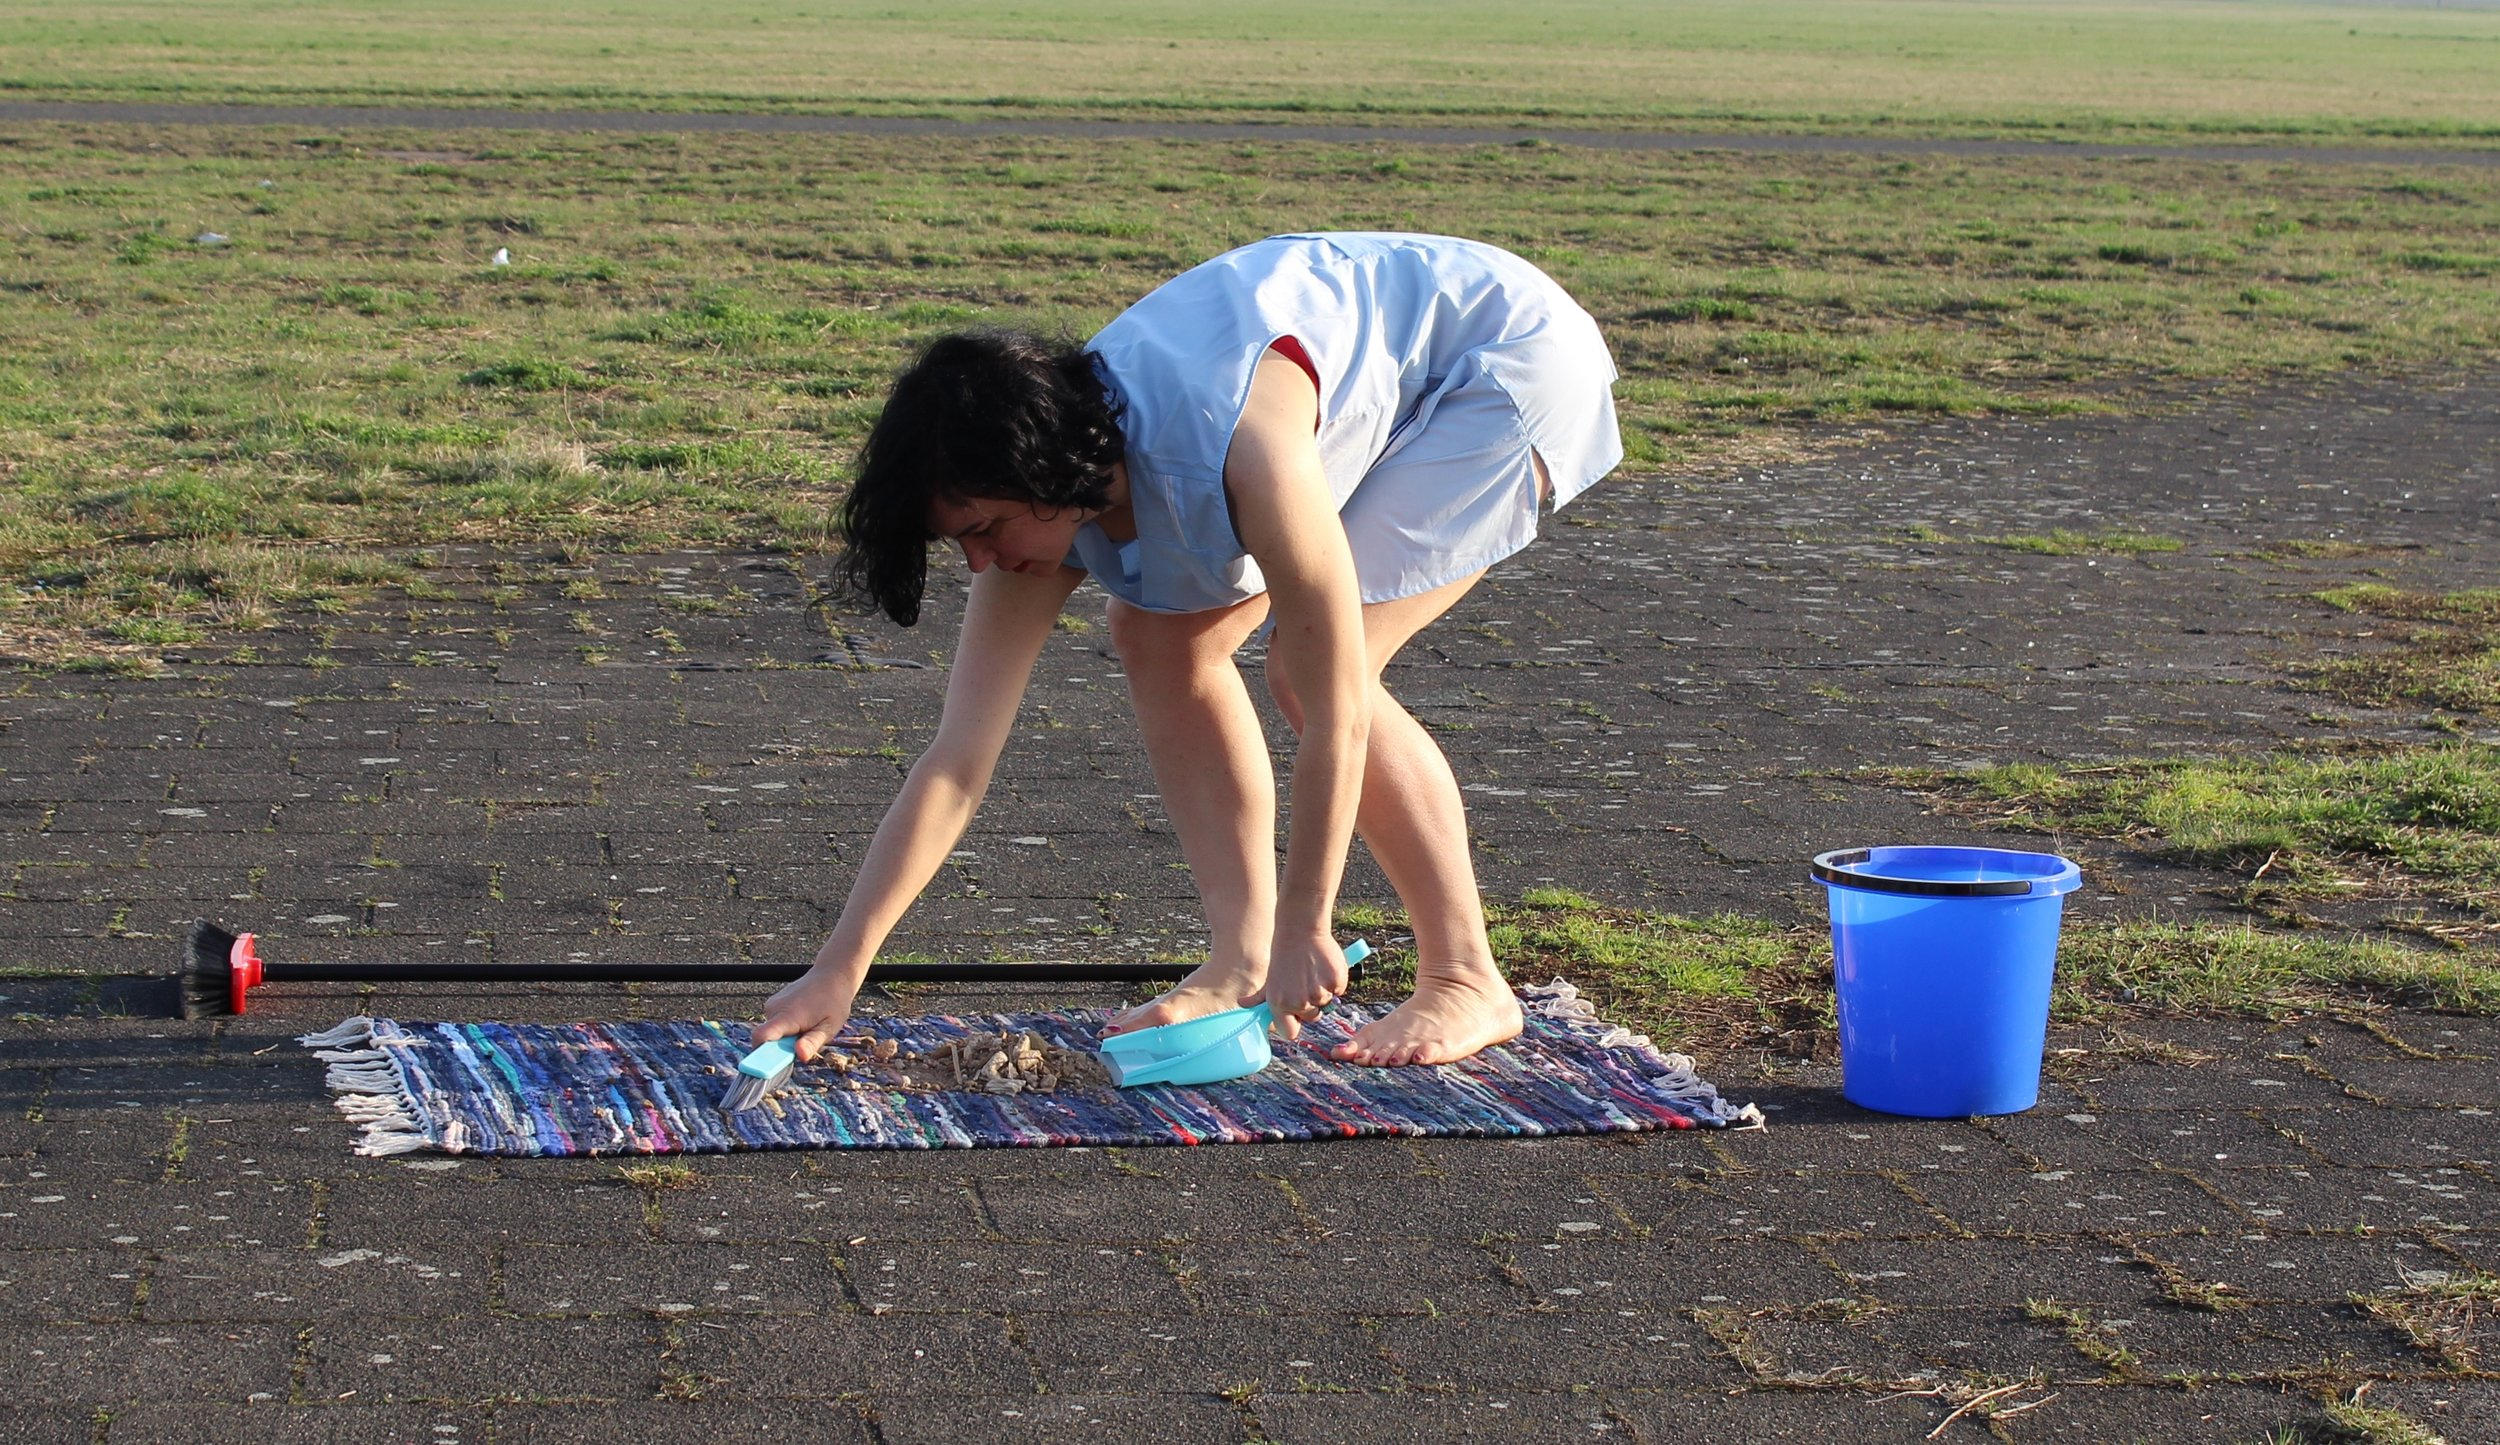 """Artist Michelle Standley performs her work """"4.5 Hours,"""" in which she continuously sweeps a rug to highlight issues of domestic labor, at Berlin's decommissioned Tempelhof Airport on April 1, 2017. Standley will repeat the performance on Sunday, Oct. 6, at Salt Lake City's Temple Square. (Photo by Michelle Standley, courtesy of the artist.)"""